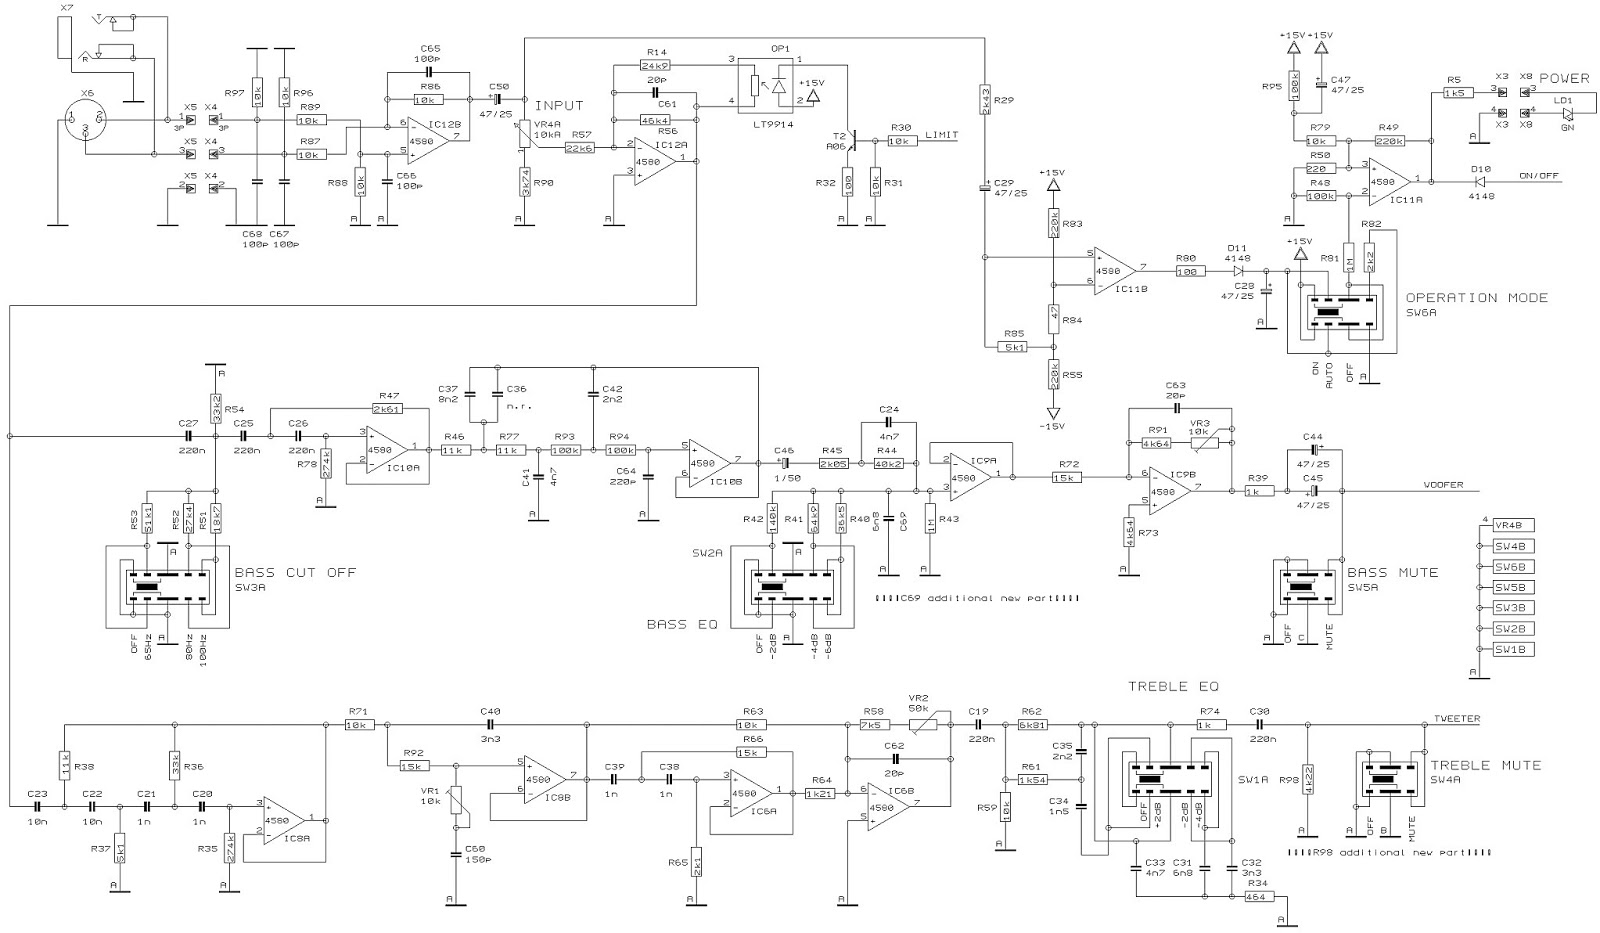 Wiring Diagram Jbl E80 Guide And Troubleshooting Of Crossover Awesome Inspiration E120 Es90